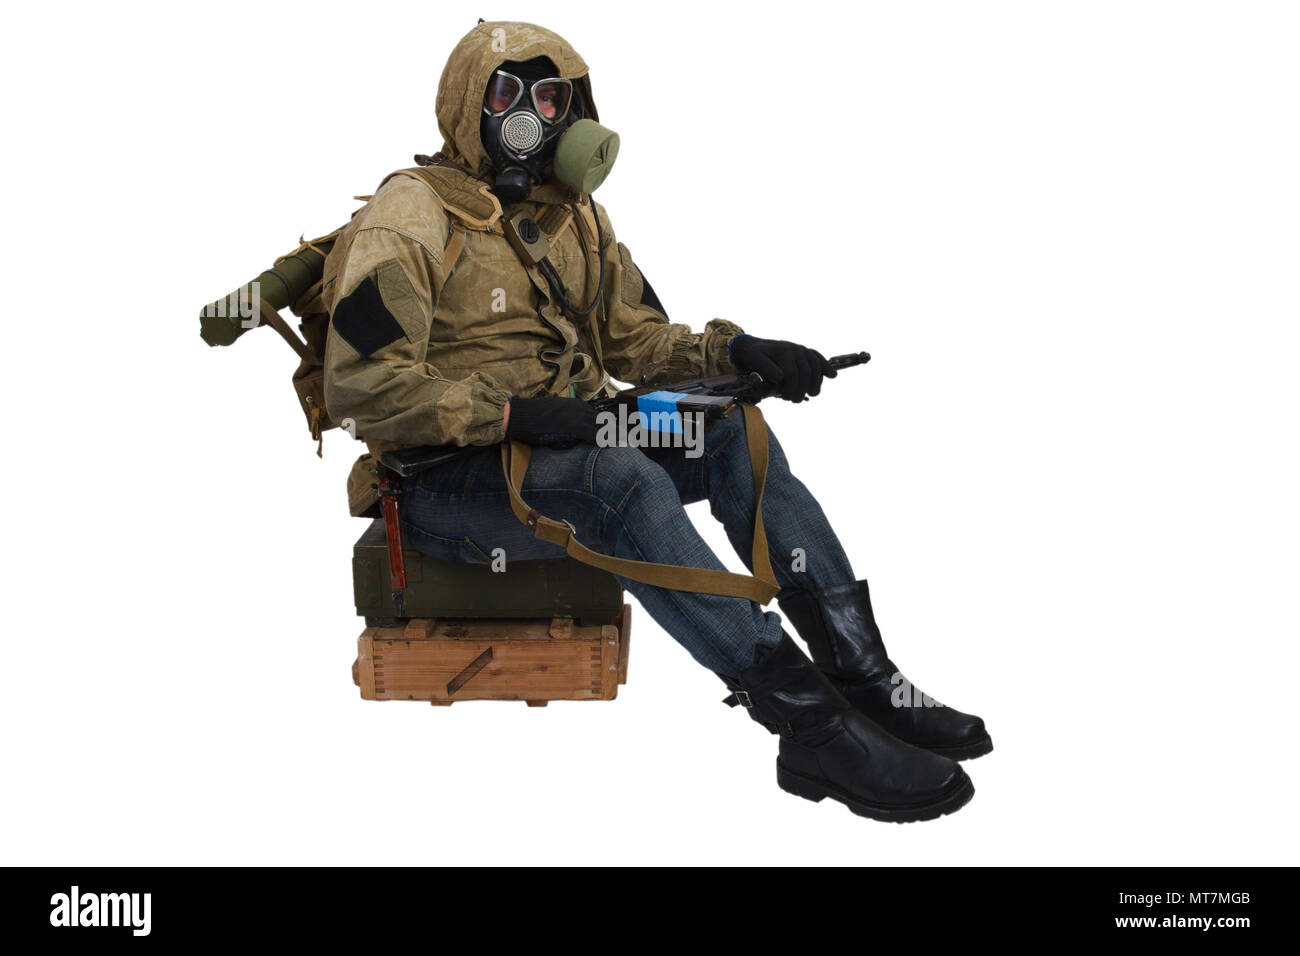 Stalker in gas mask with ak-47 gun isolated on white - Stock Image